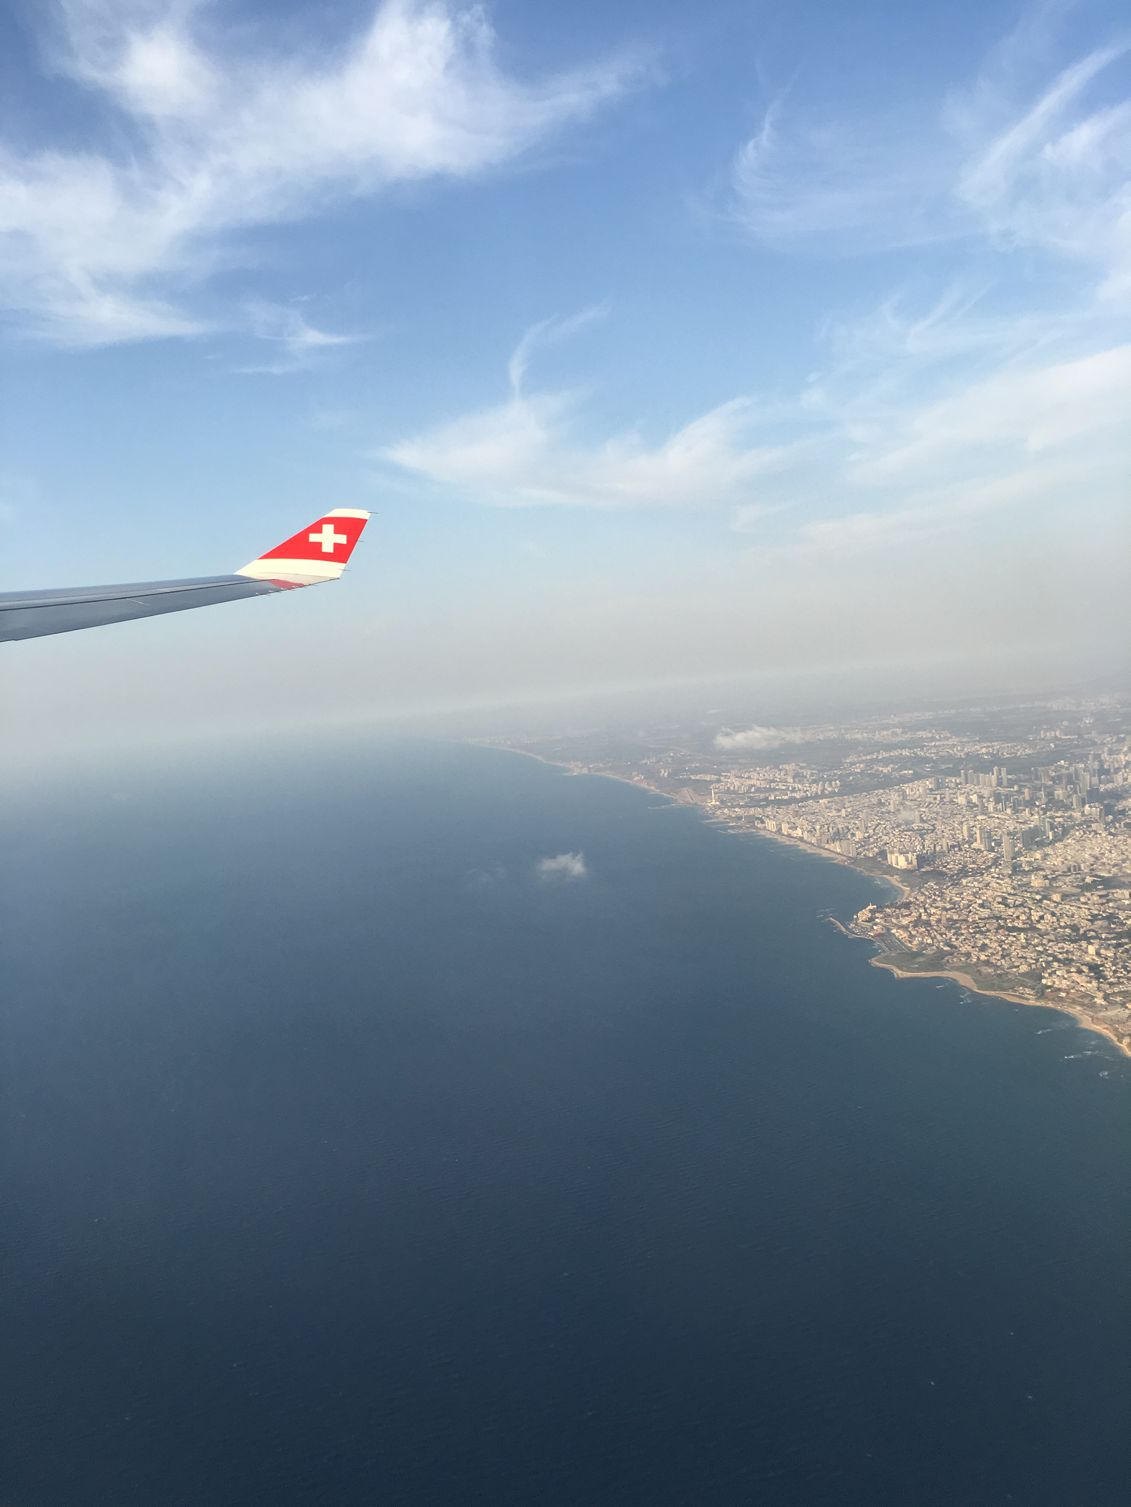 A last snapshot of Tel Aviv on the way home